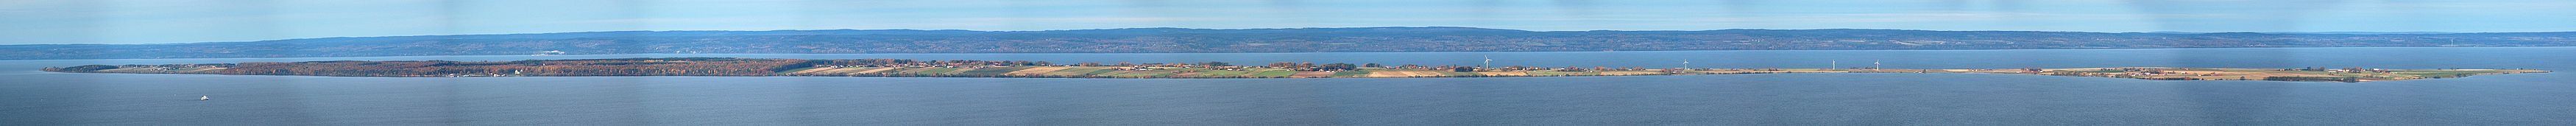 Panorama over Visingsö.jpg